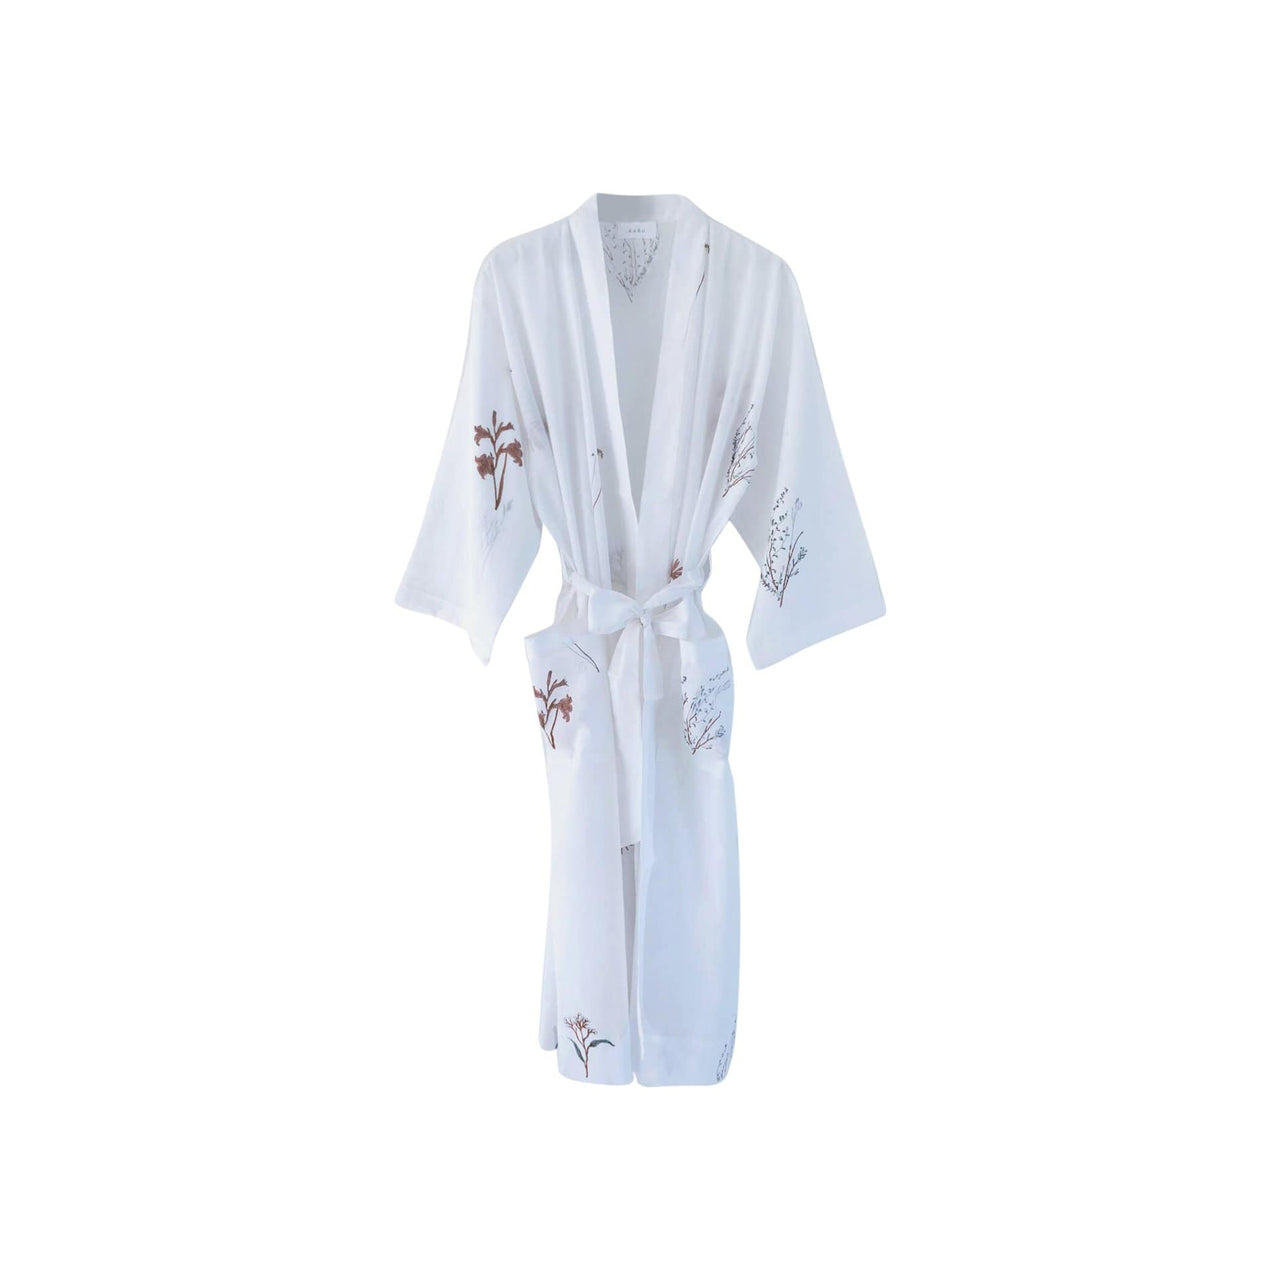 KARU Sleepwear One Size Fynbos Robe in Organic Cotton